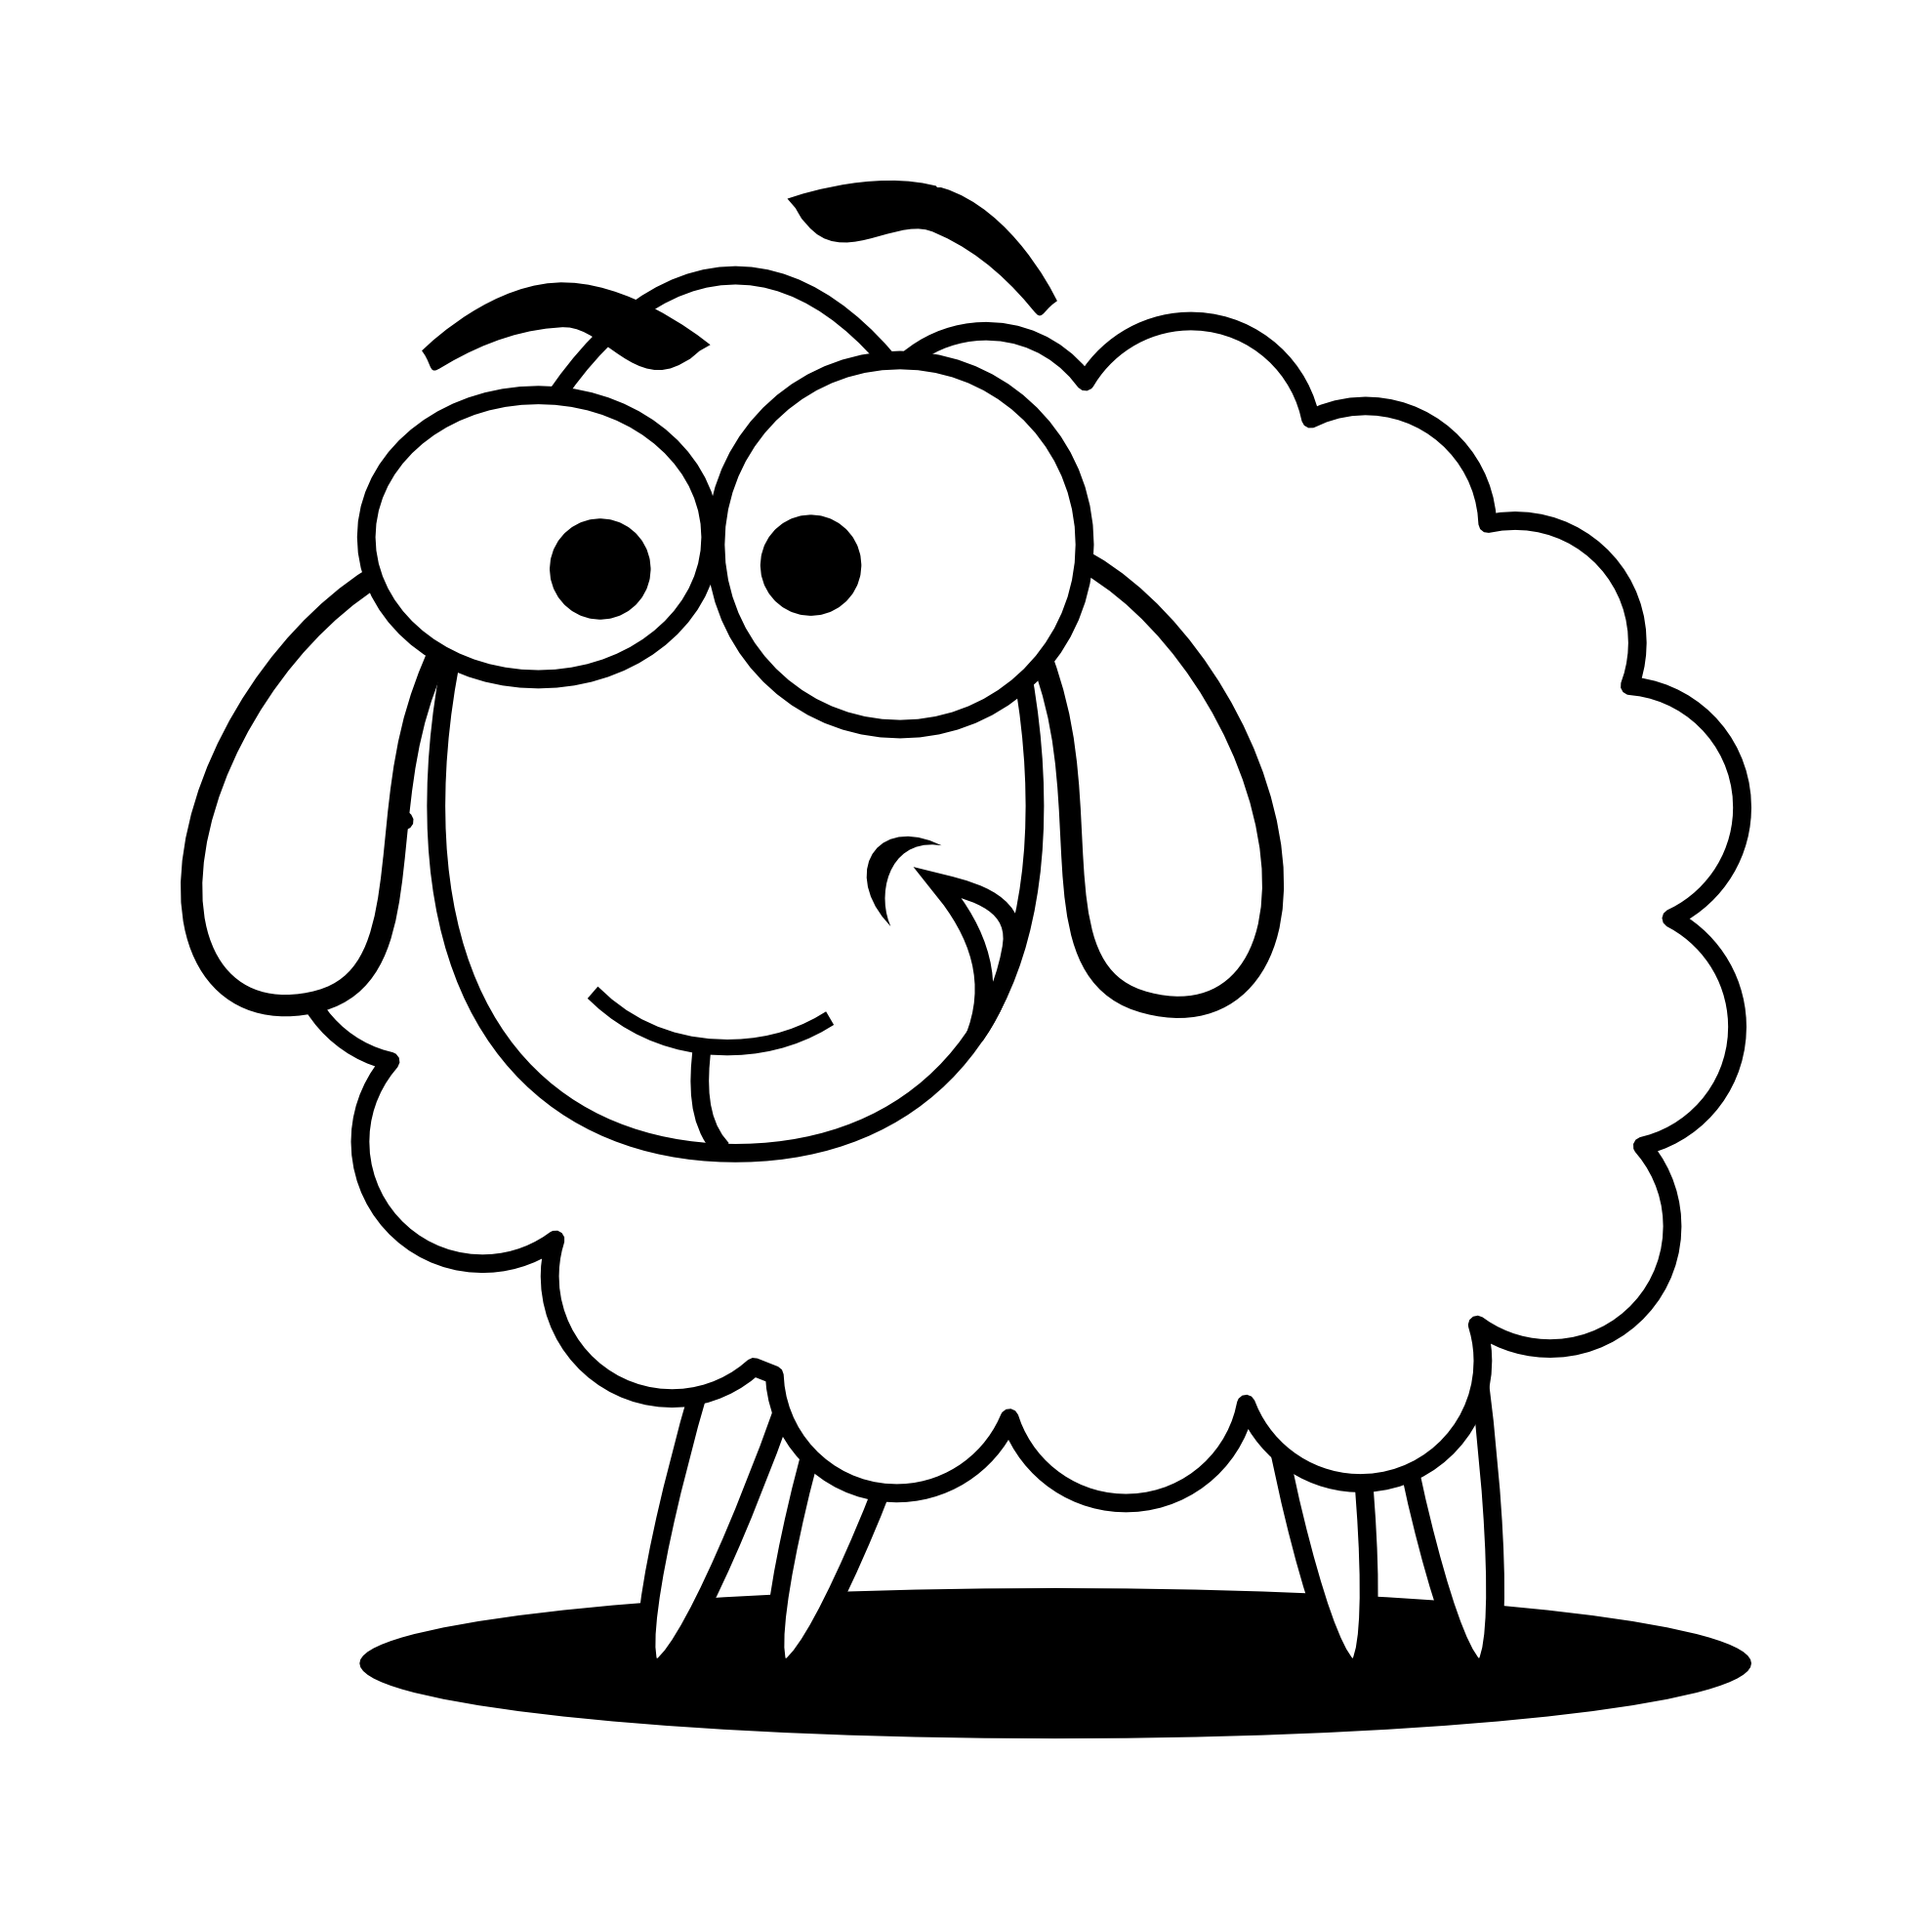 Sheep lamb clipart black and white free clipart images.